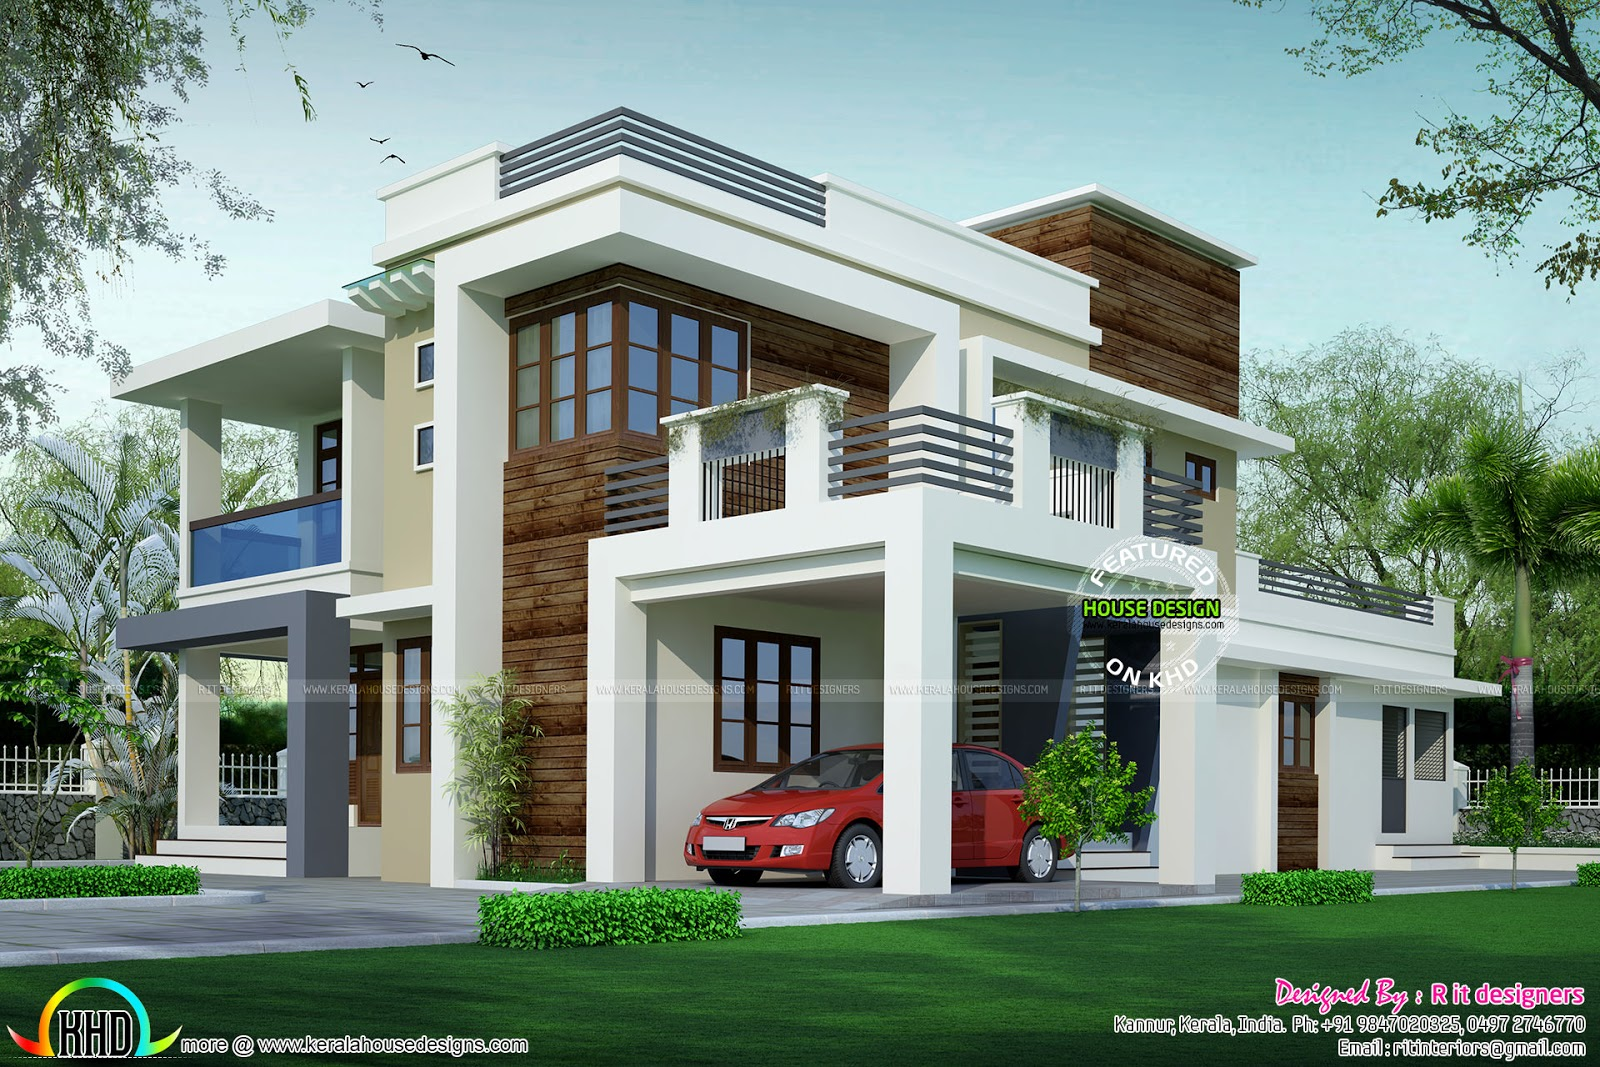 House design contemporary model kerala home design and for Contemporary style homes in kerala